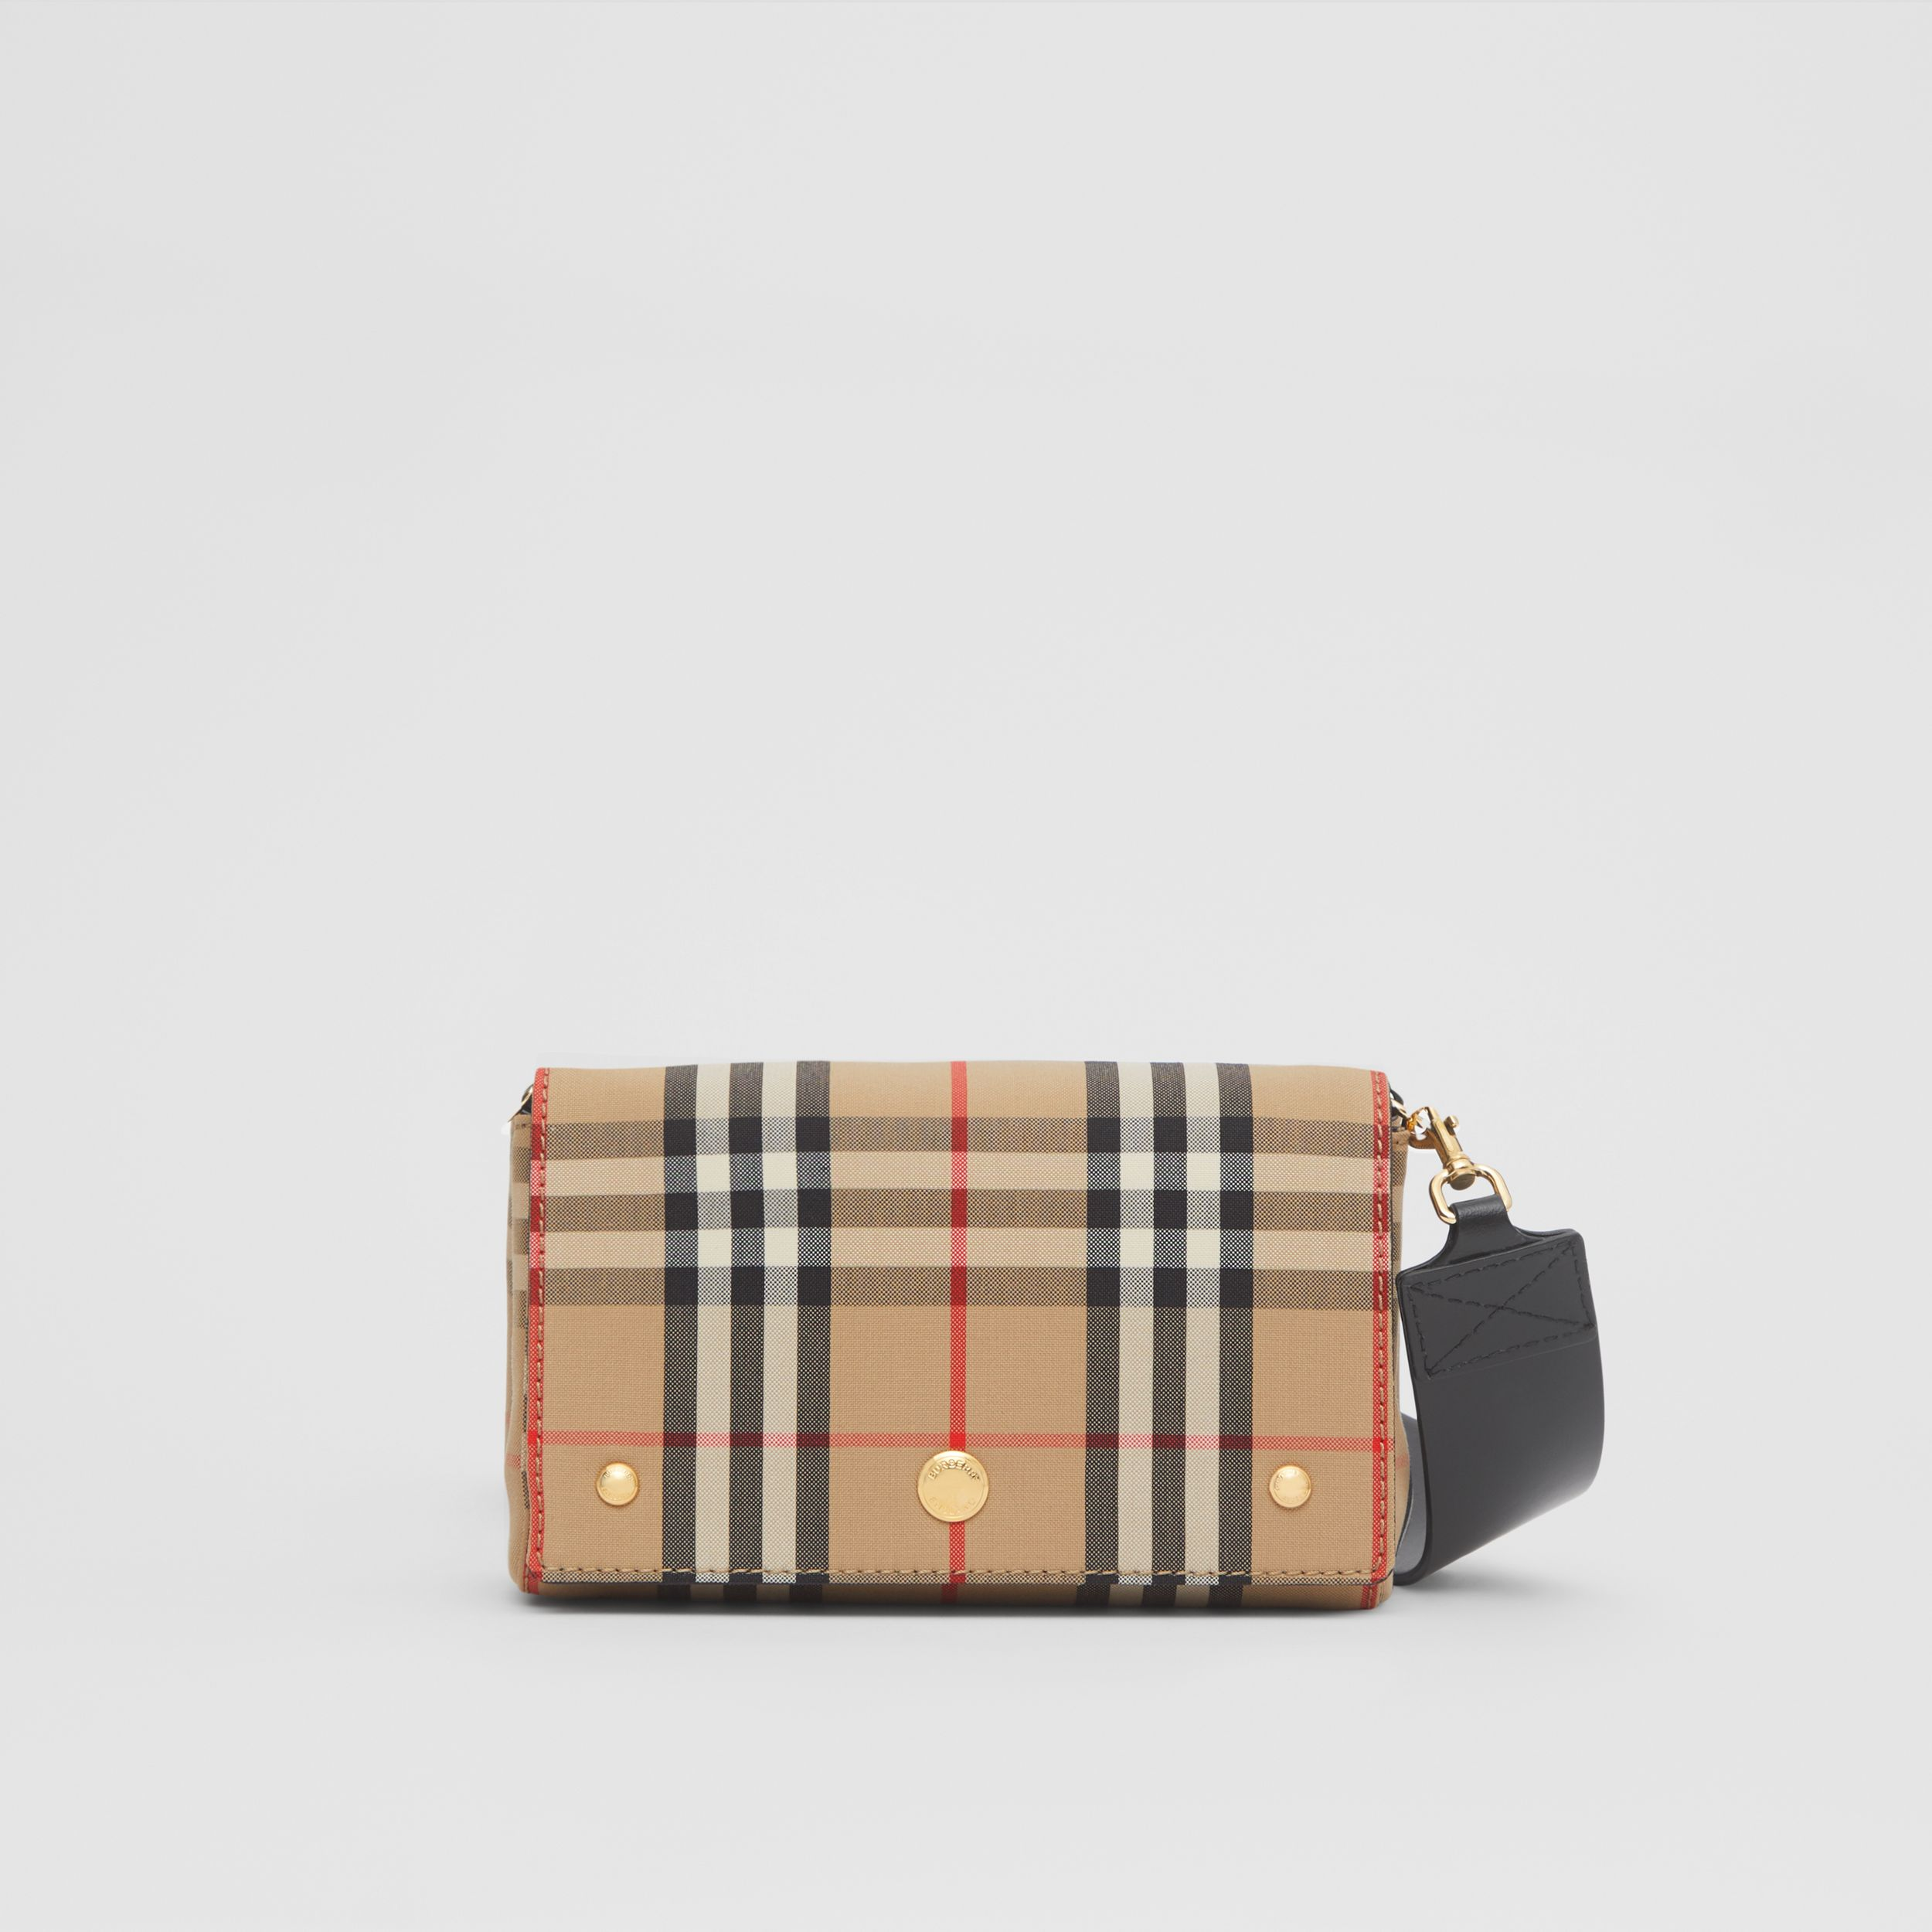 Small Vintage Check and Leather Crossbody Bag in Archive Beige - Women | Burberry United Kingdom - 1